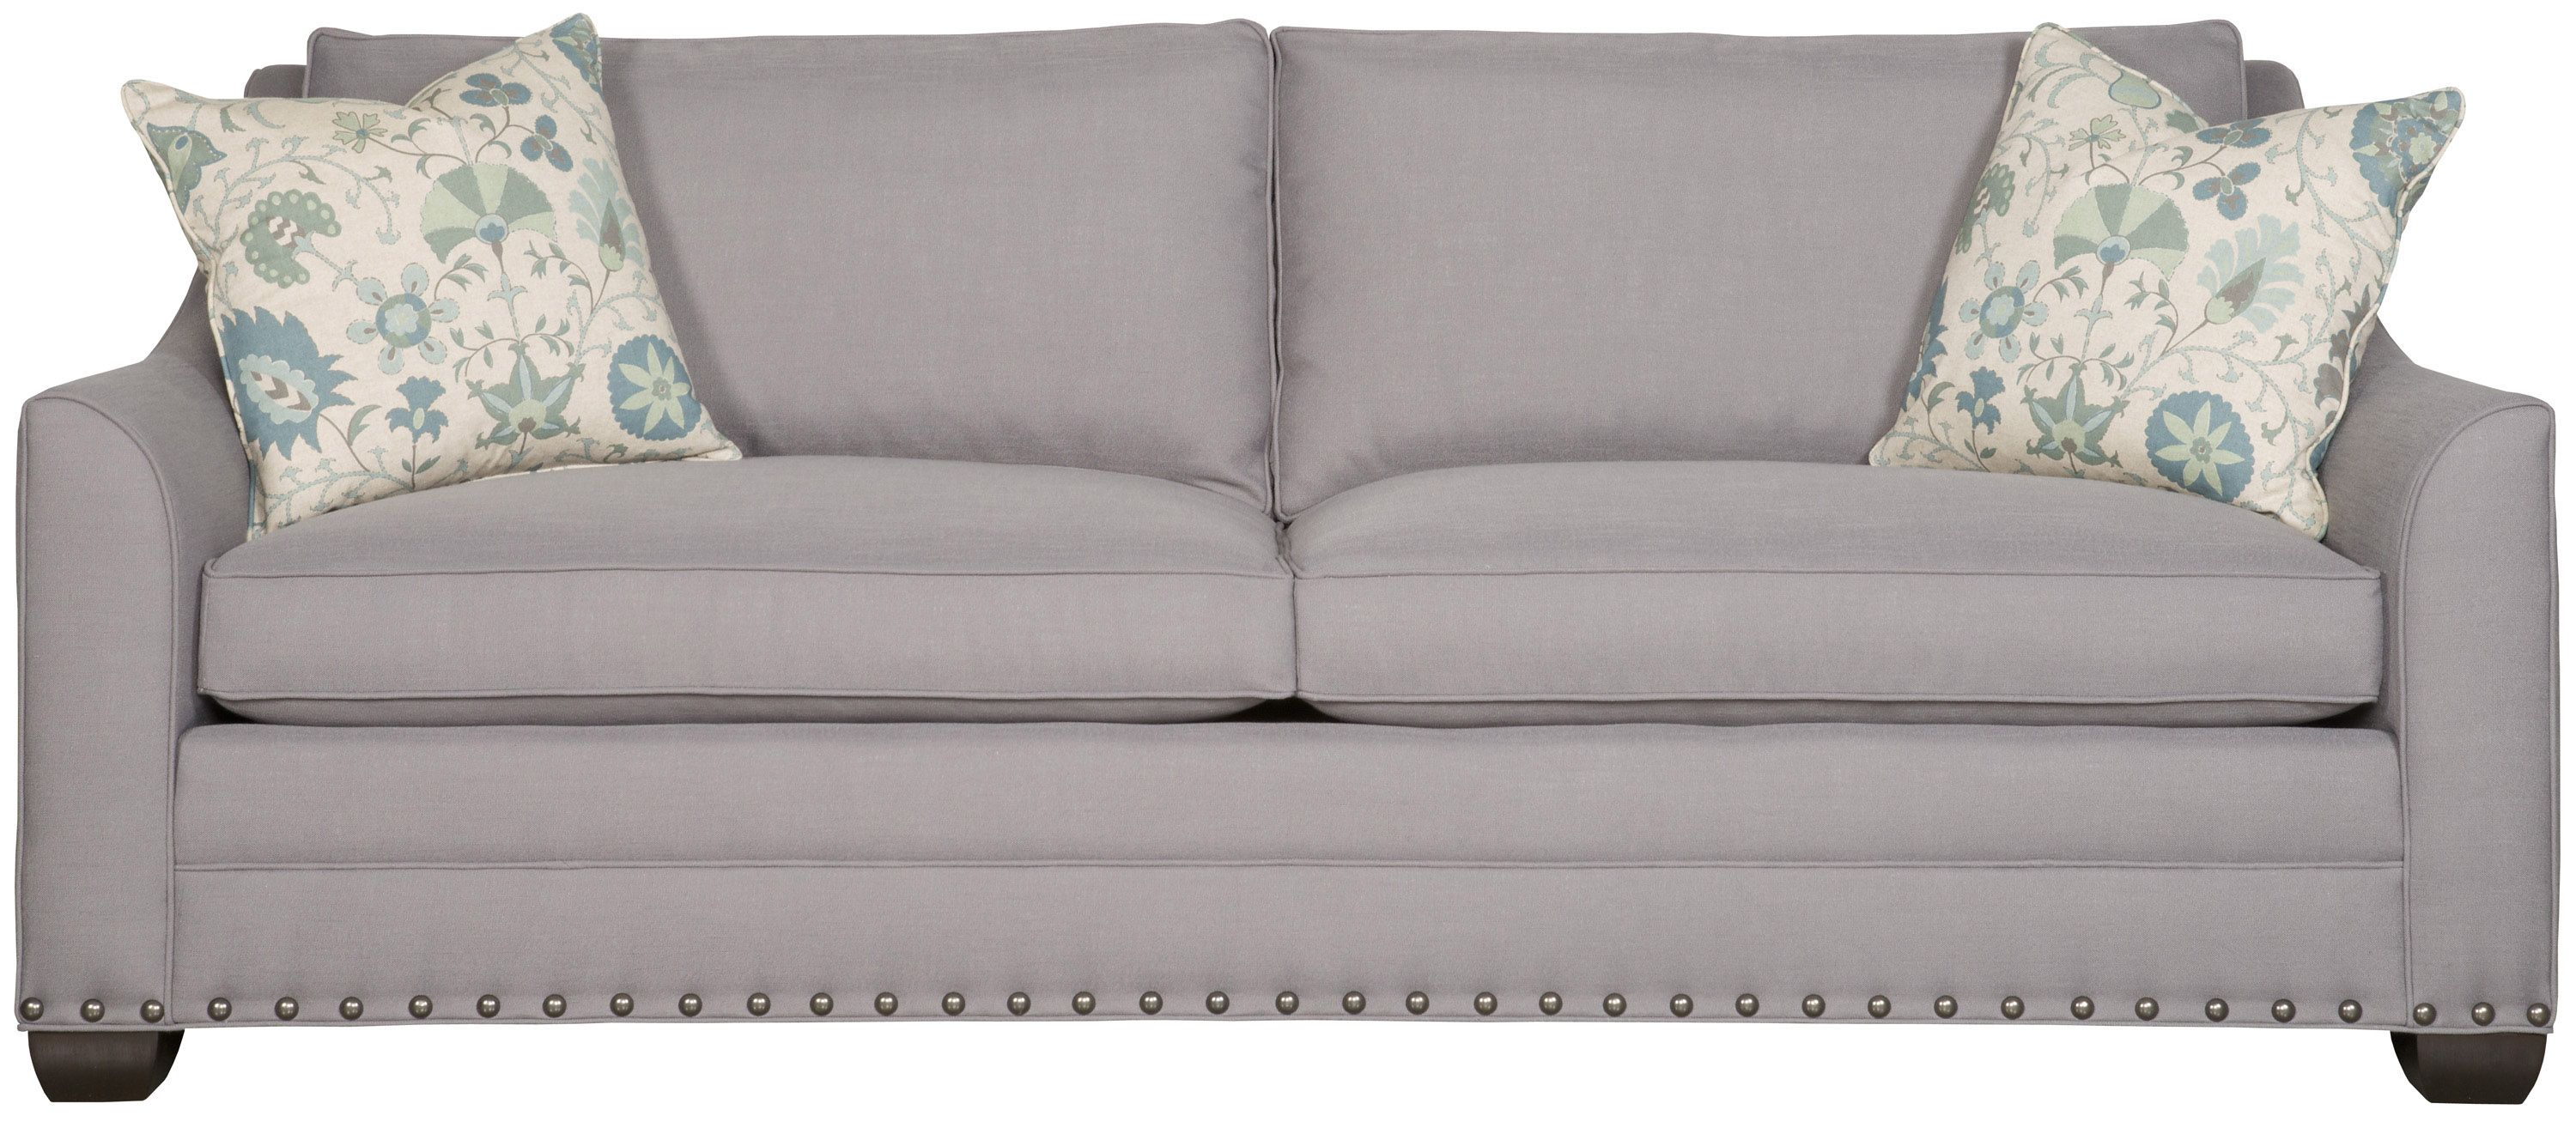 This eye catching American made sofa from Vanguard Furniture is as